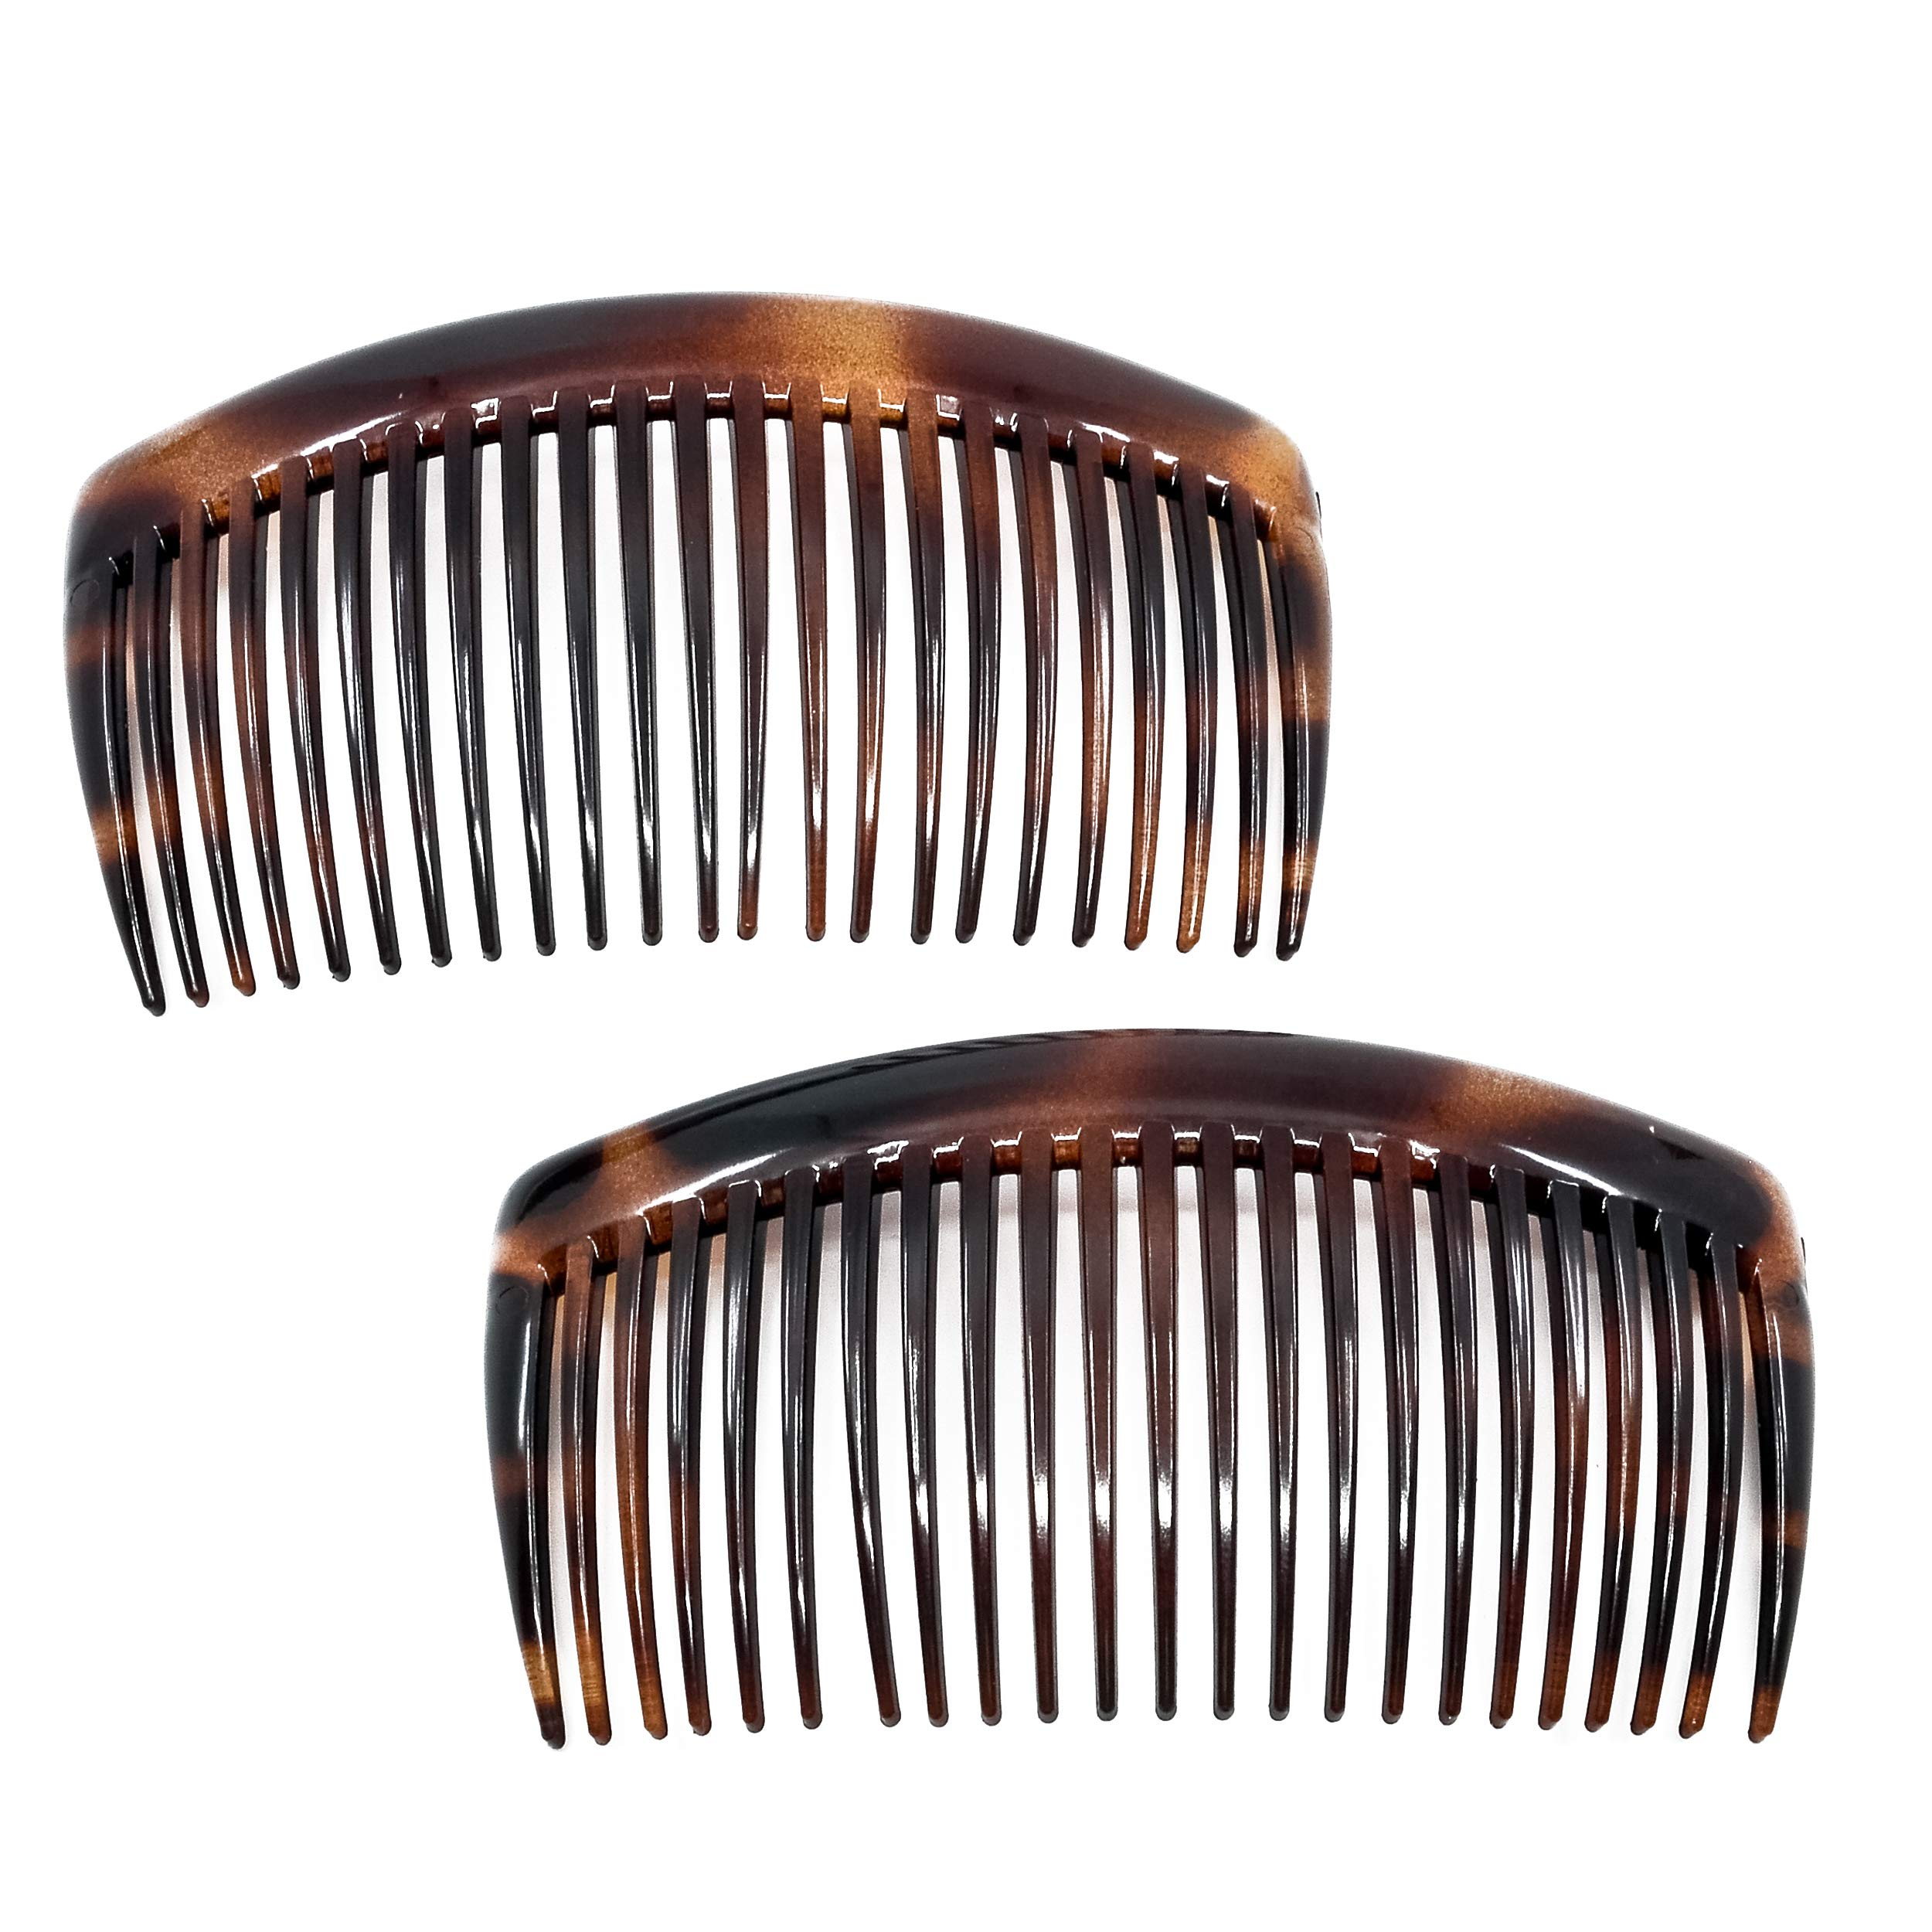 Camila Paris French Side Combs Large Set of 2 Rounded, Tortoise Shell Flexible Durable Cellulose, Strong Hold Grip Hair Clips for Women, No Slip Styling Girls Hair Accessories, Made in France by Camila